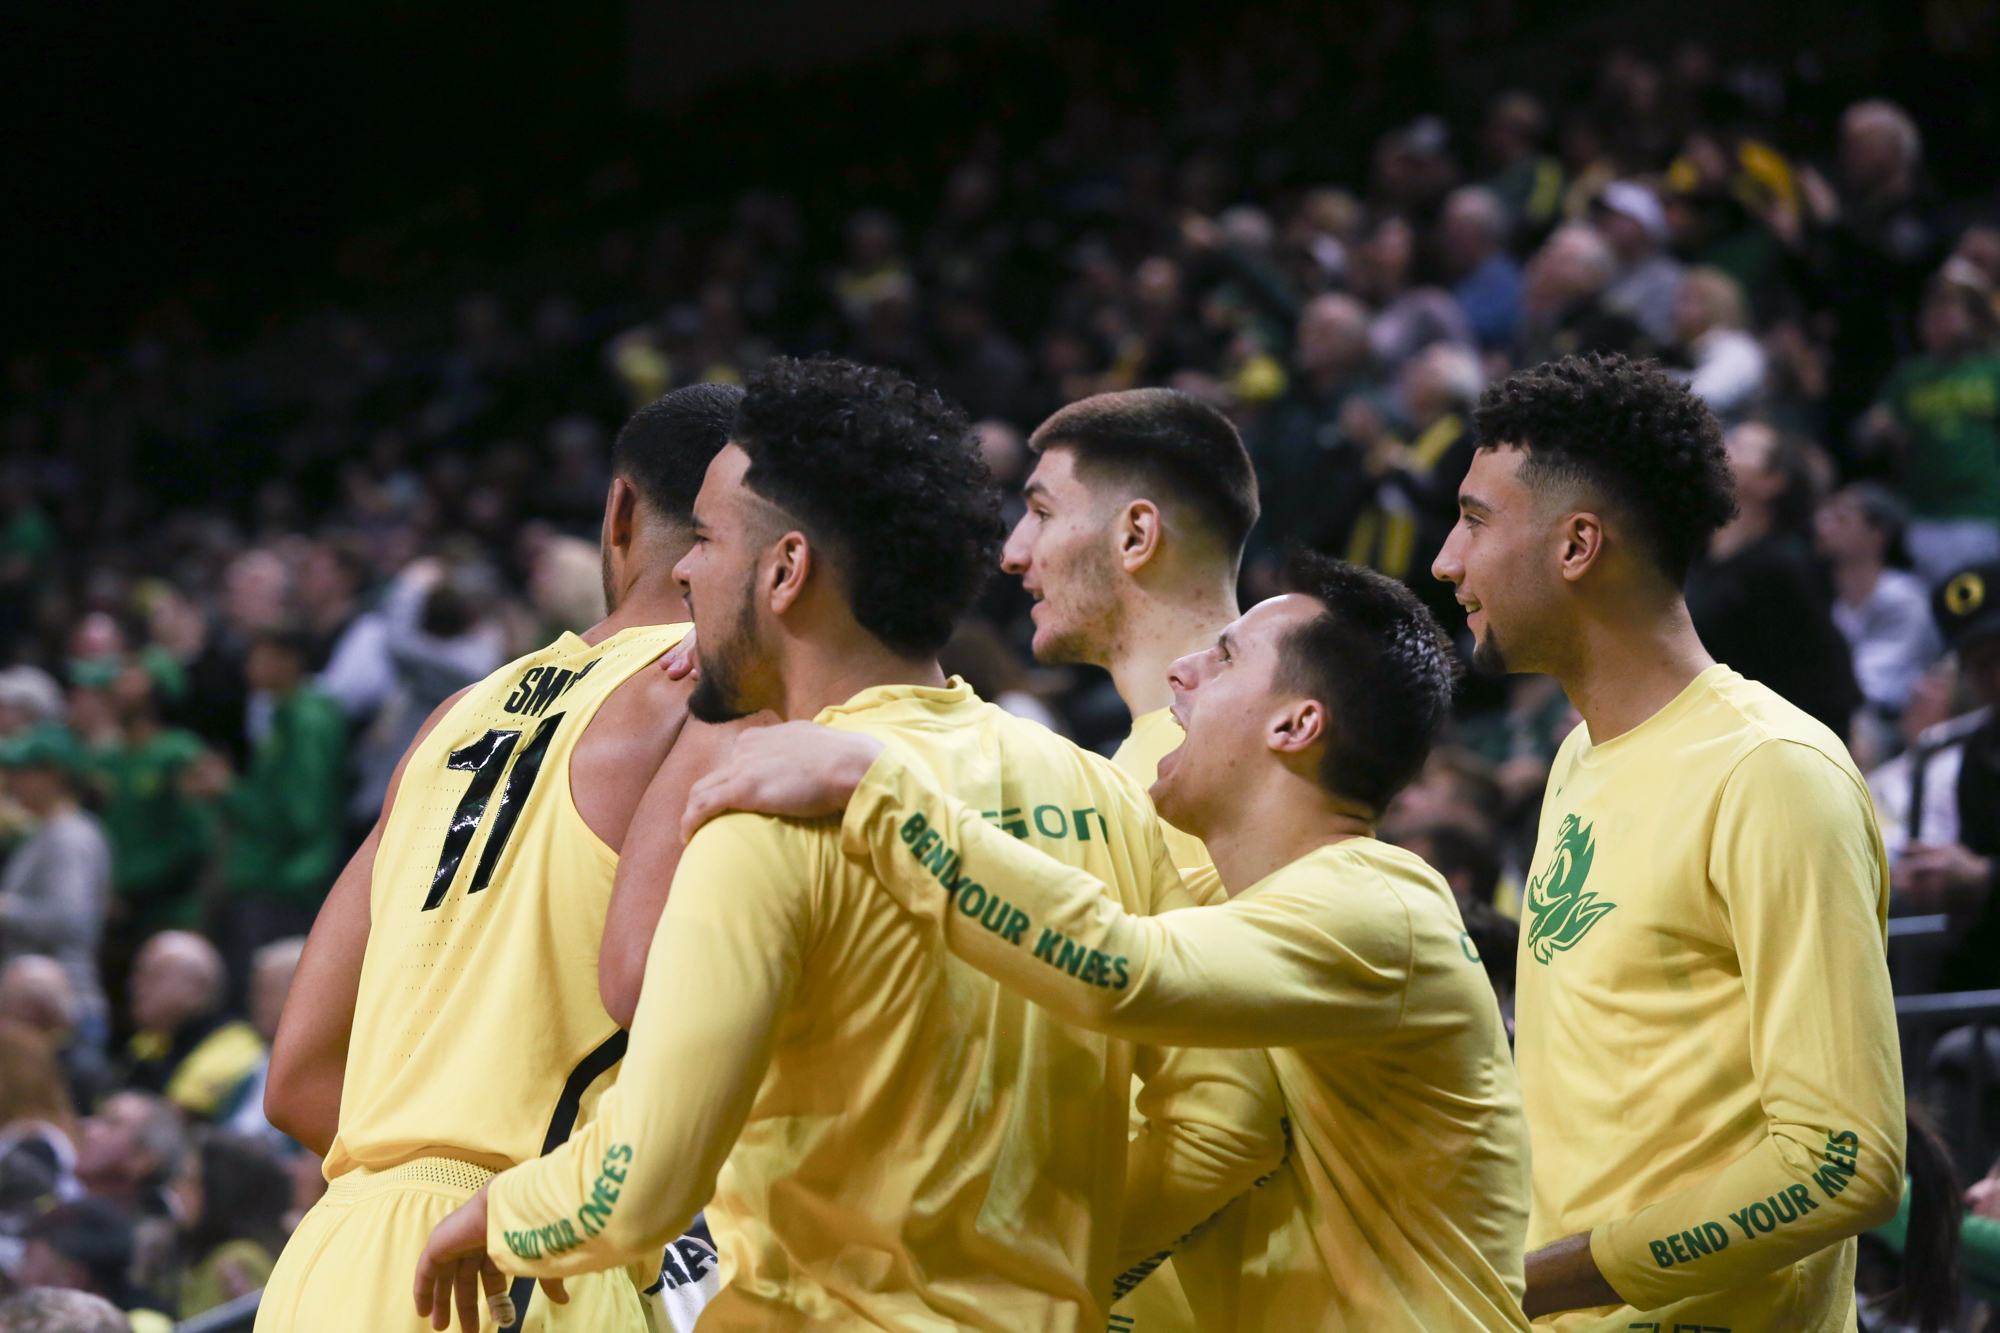 The Oregon Ducks celebrate after a score. Oregon basketball take on the Washington State Cougars at Matthew Knight Arena in Eugene, Ore. on Feb. 11, 2018. (Natalie Waitt-Gibson/Emerald)